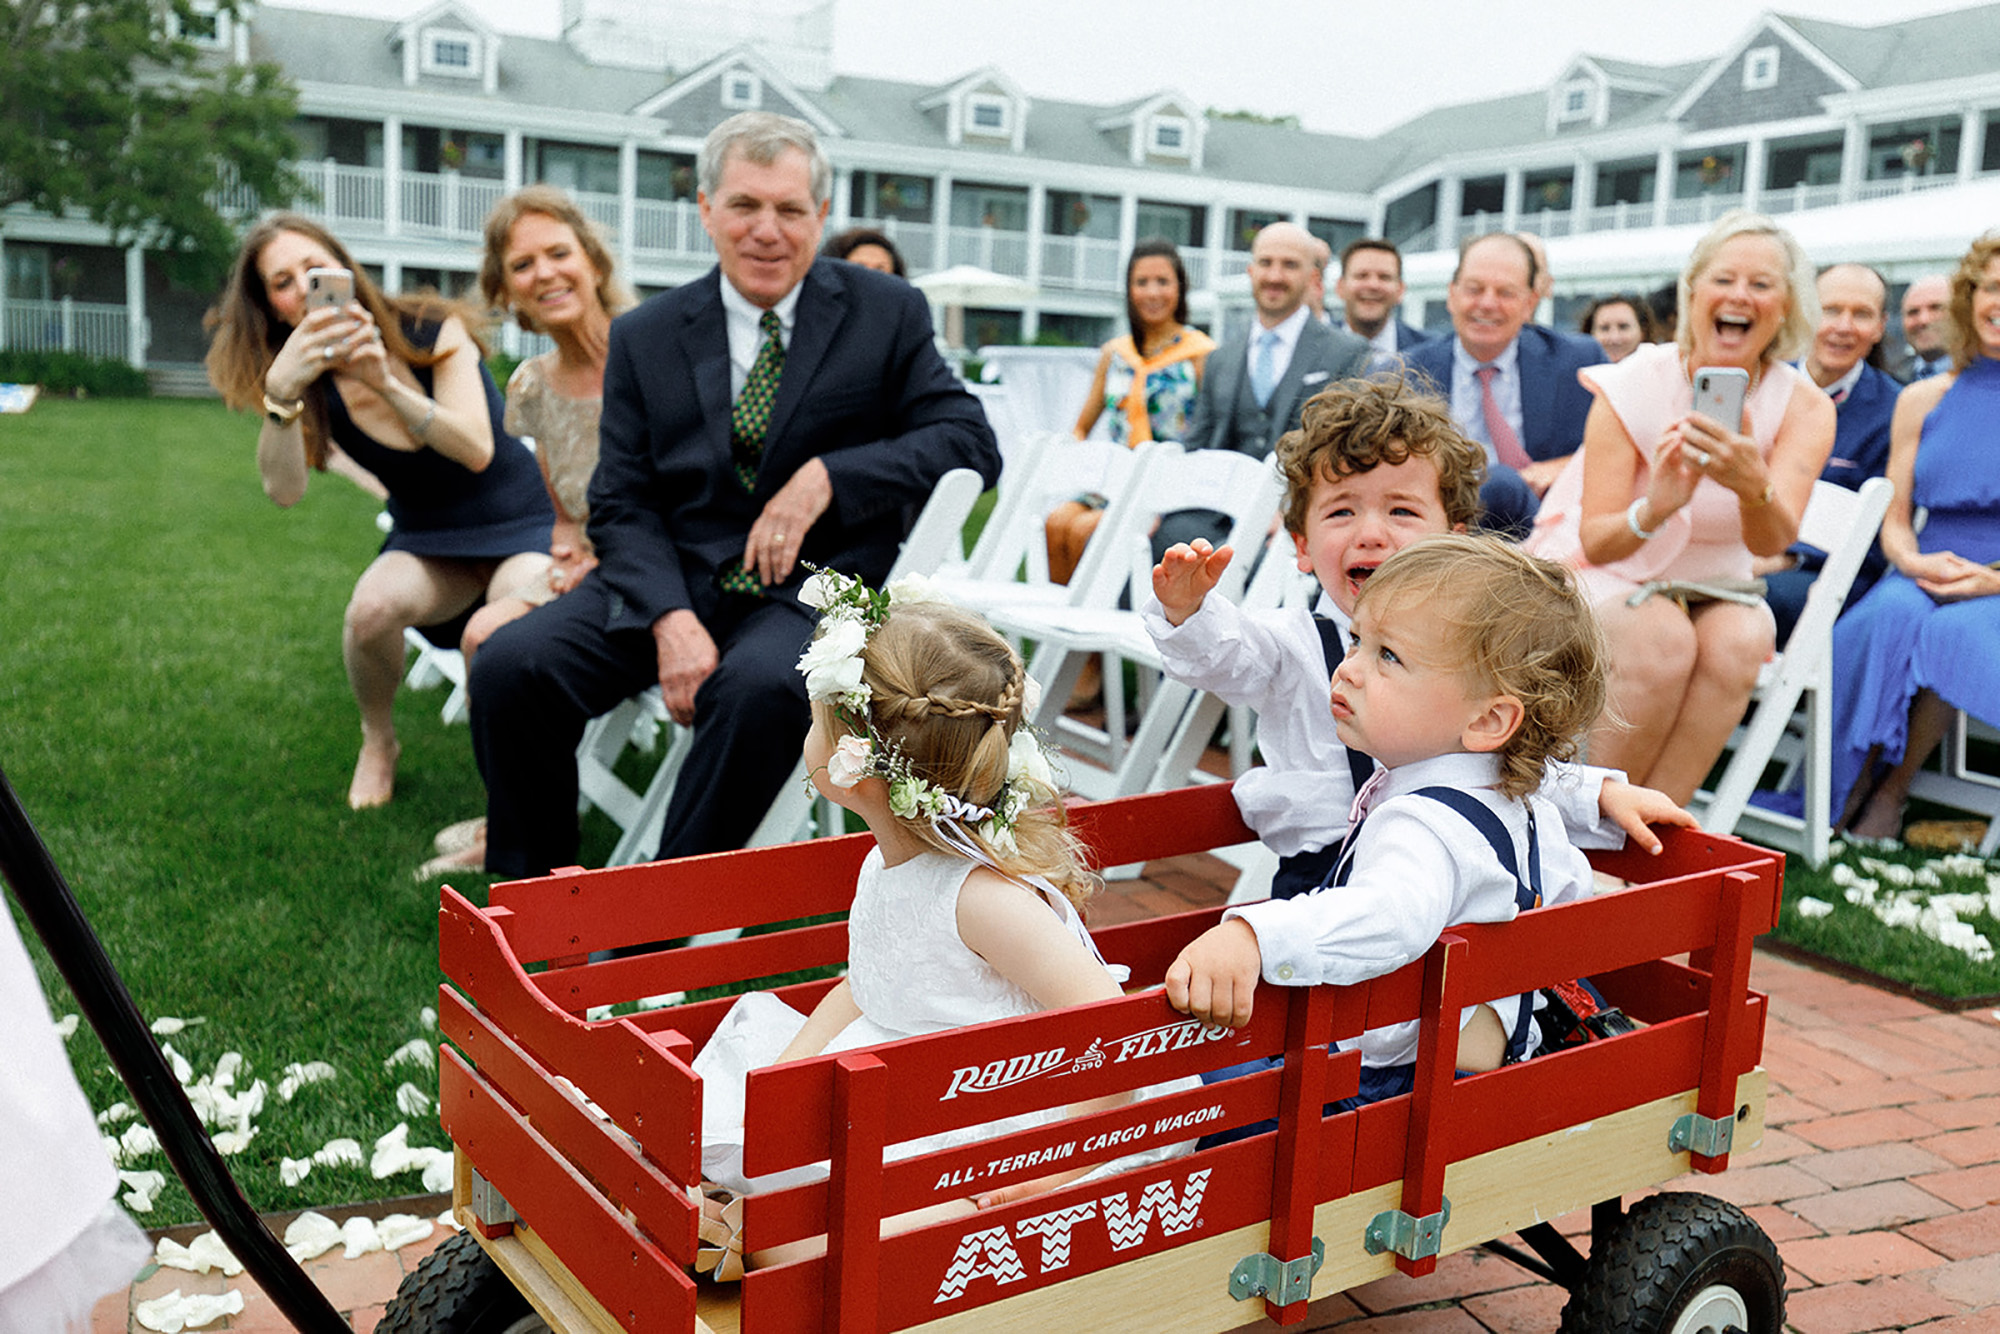 Guests watching kids riding in wagon - photo by Alex Paul Photography